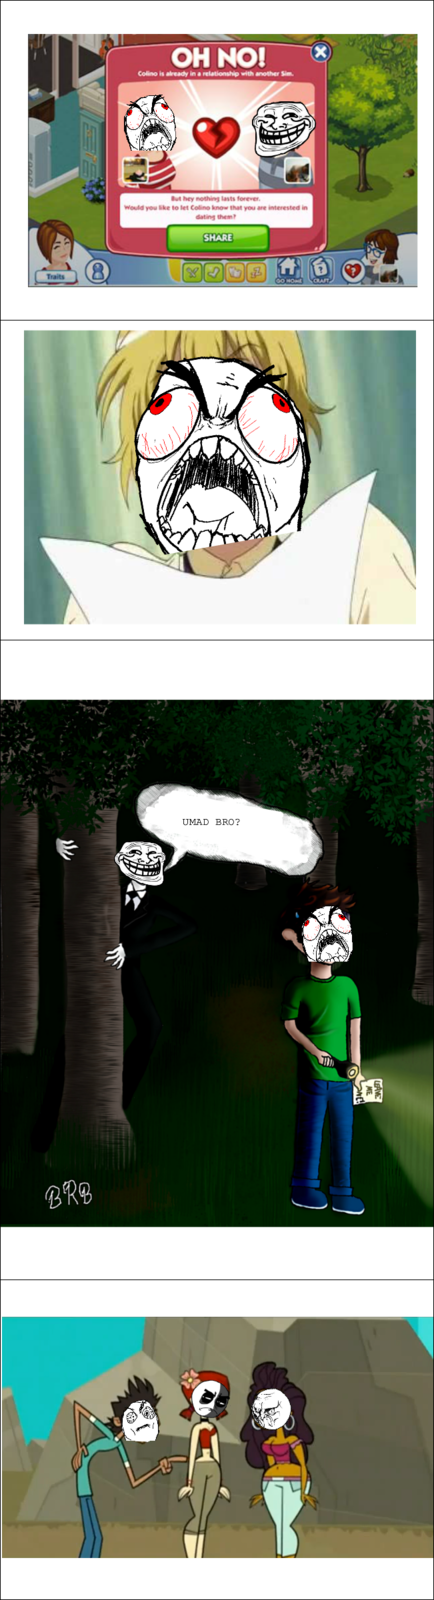 Photos with rage comic faces over it